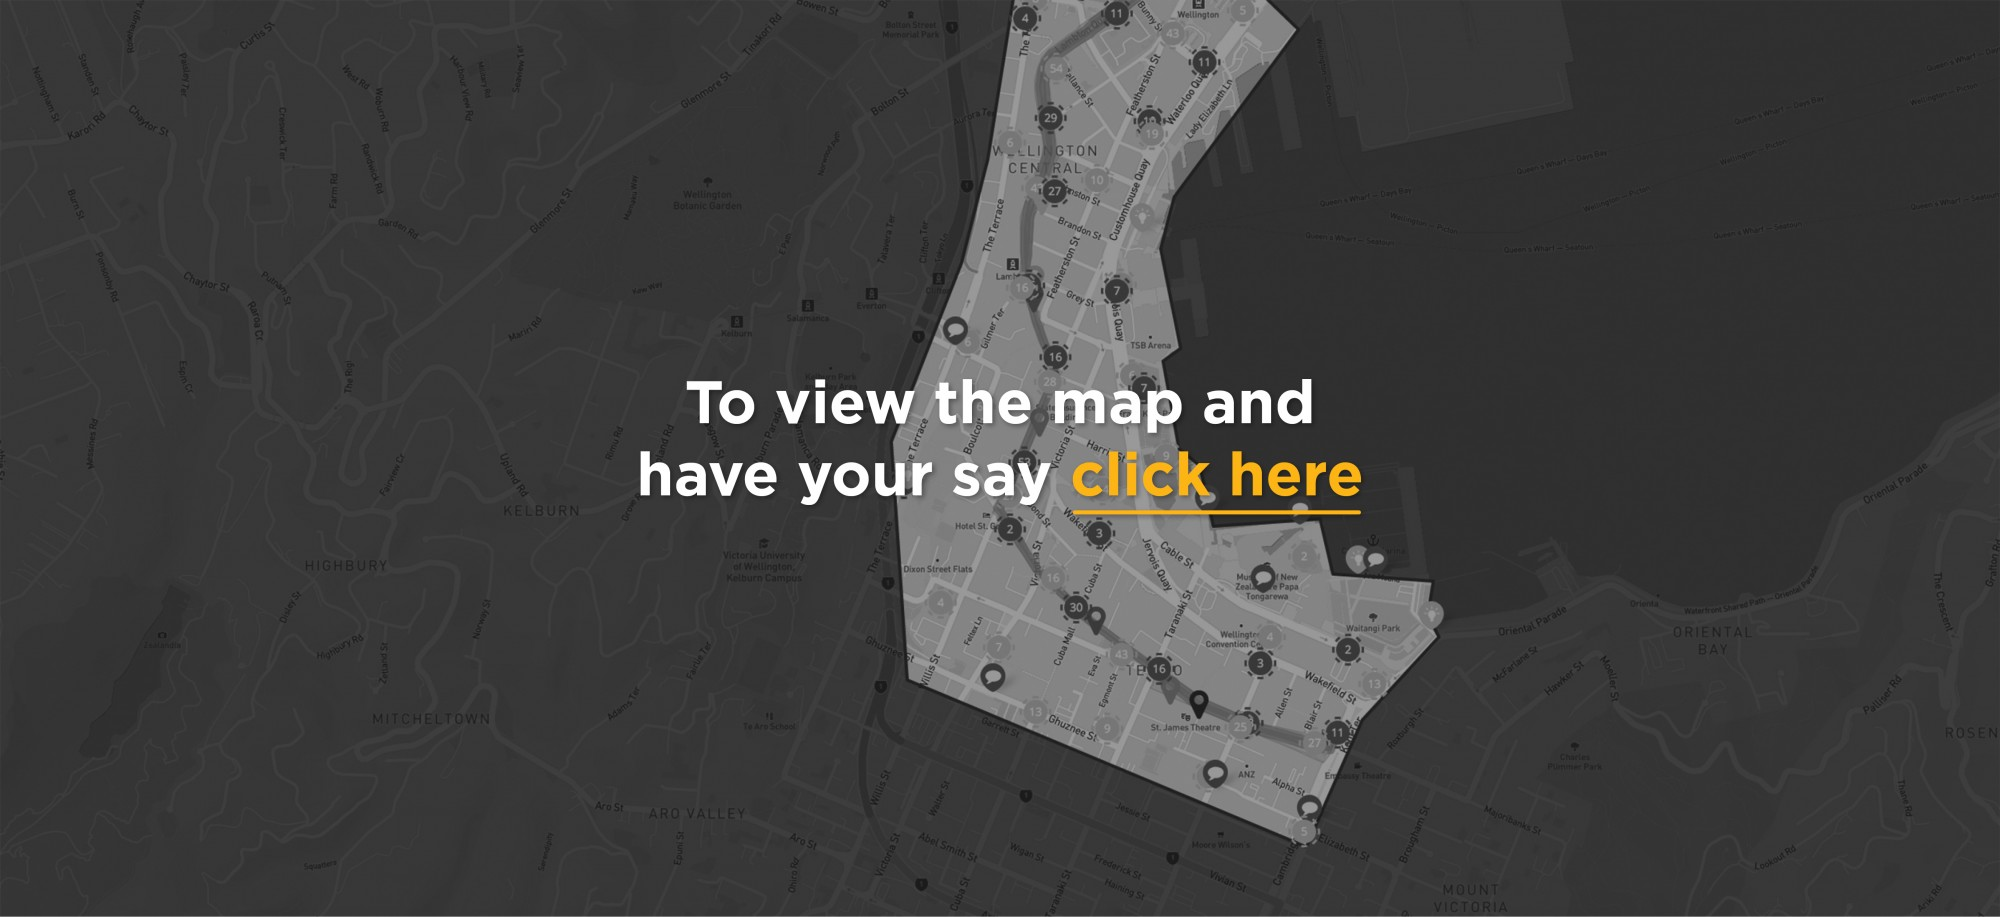 View the map and have your say click here